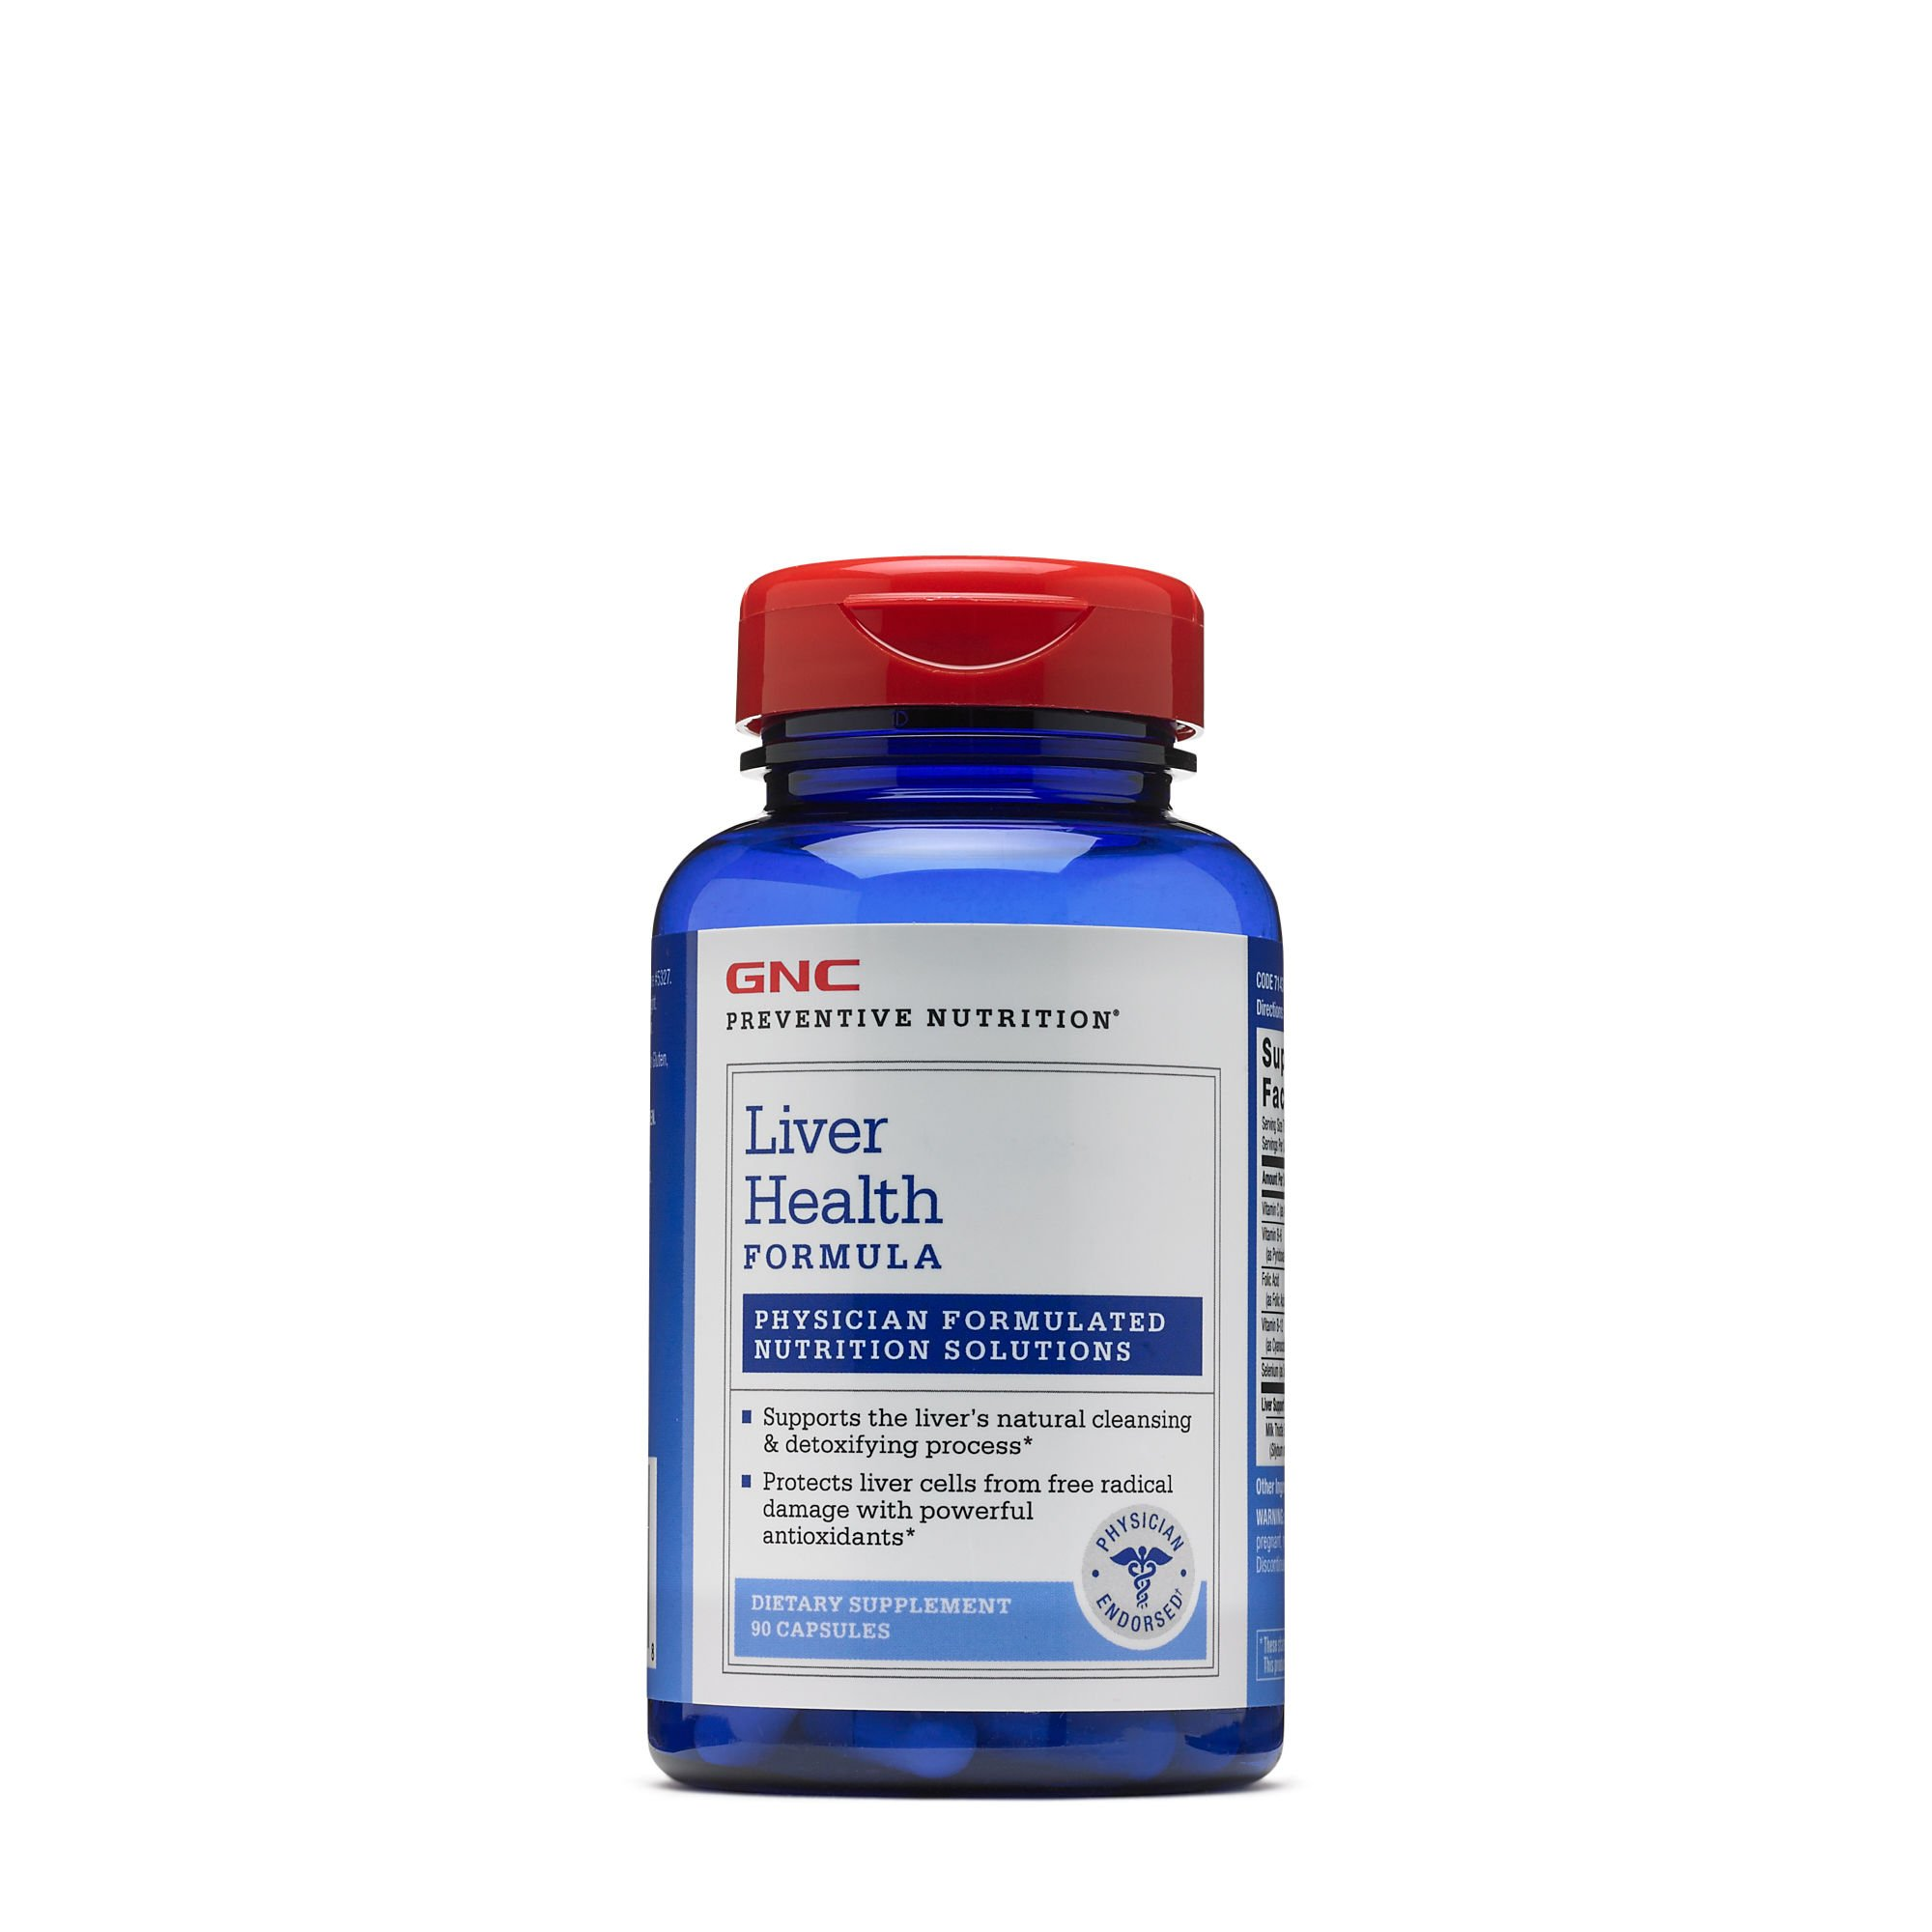 GNC Preventive Nutrition Liver Health Formula with Milk Thistle Extract, Antioxidants Metabolism Support